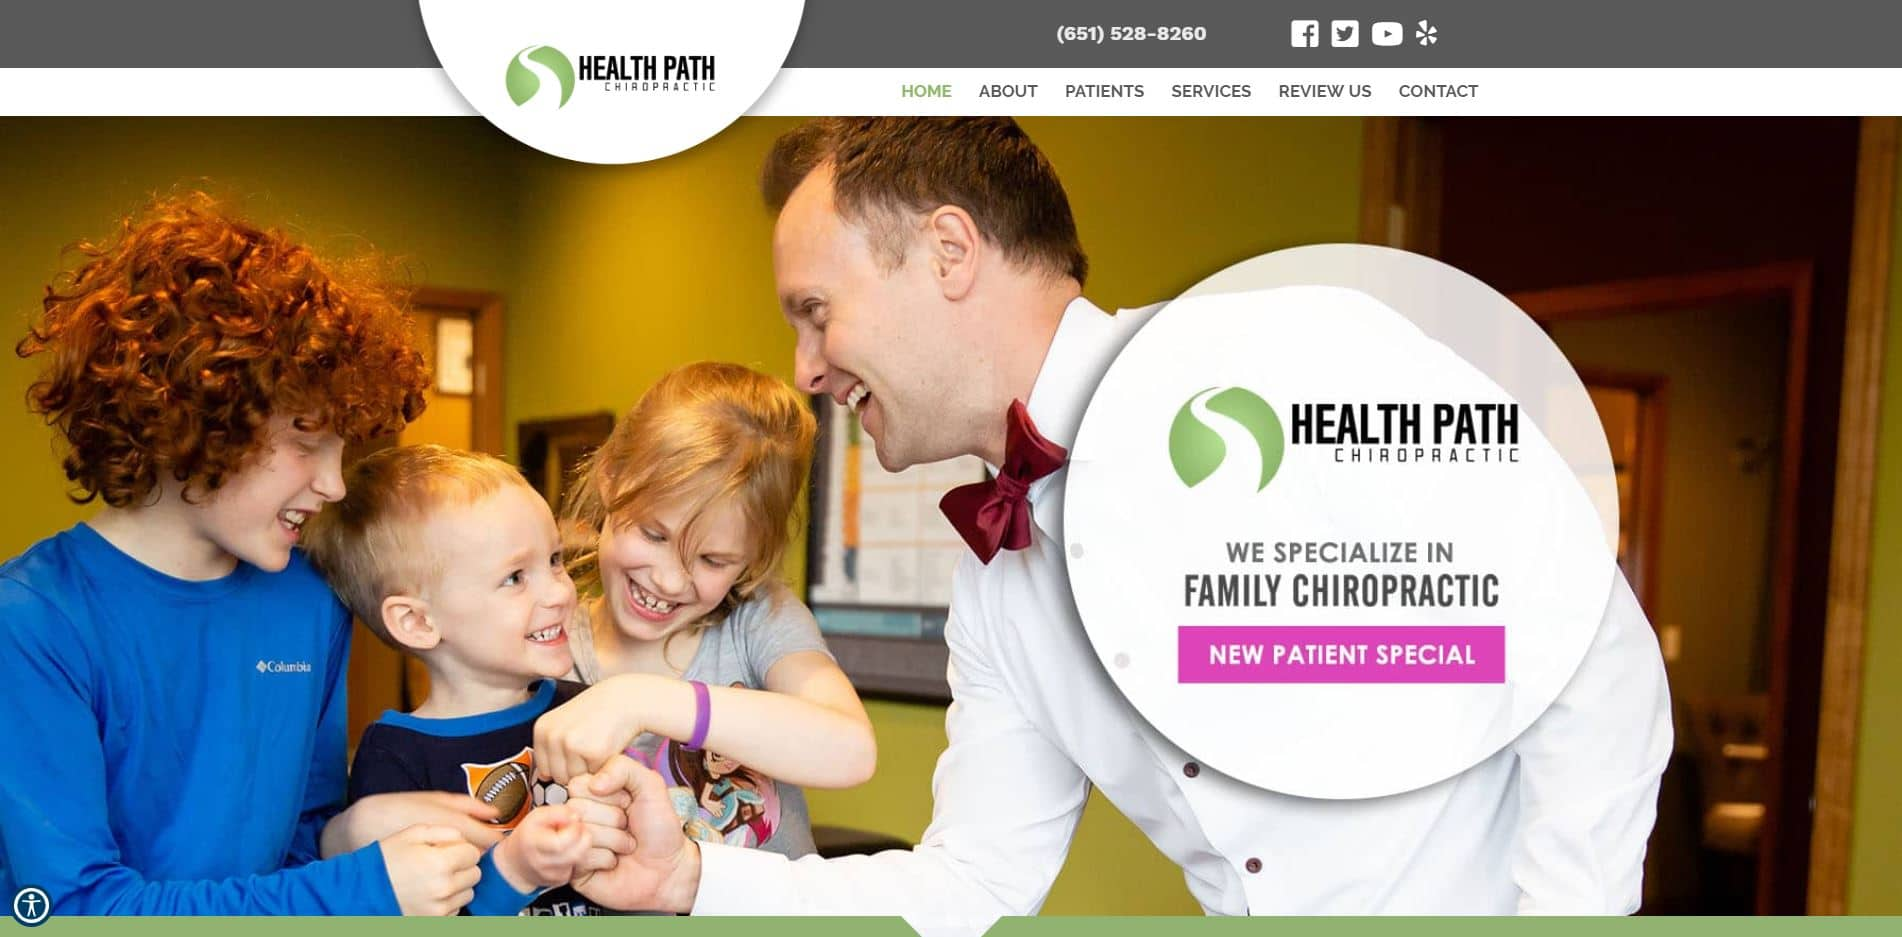 Chiropractor in Lino Lakes